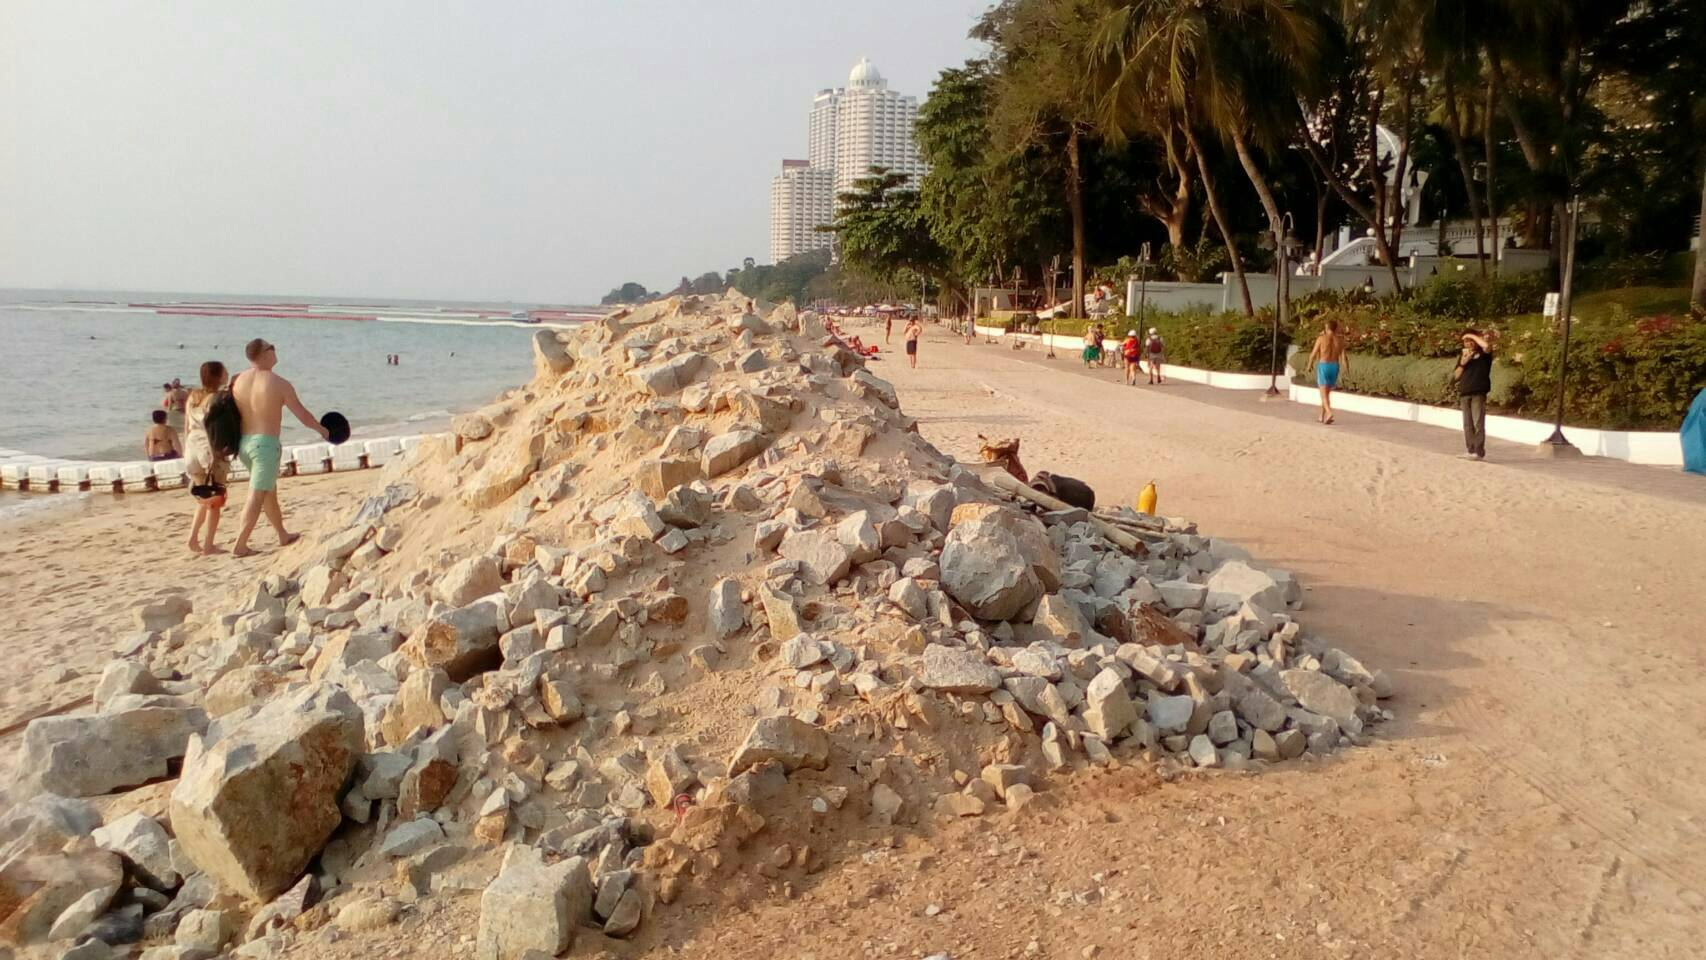 A large pile of construction rubbish has been left on Wong Amat Beach.